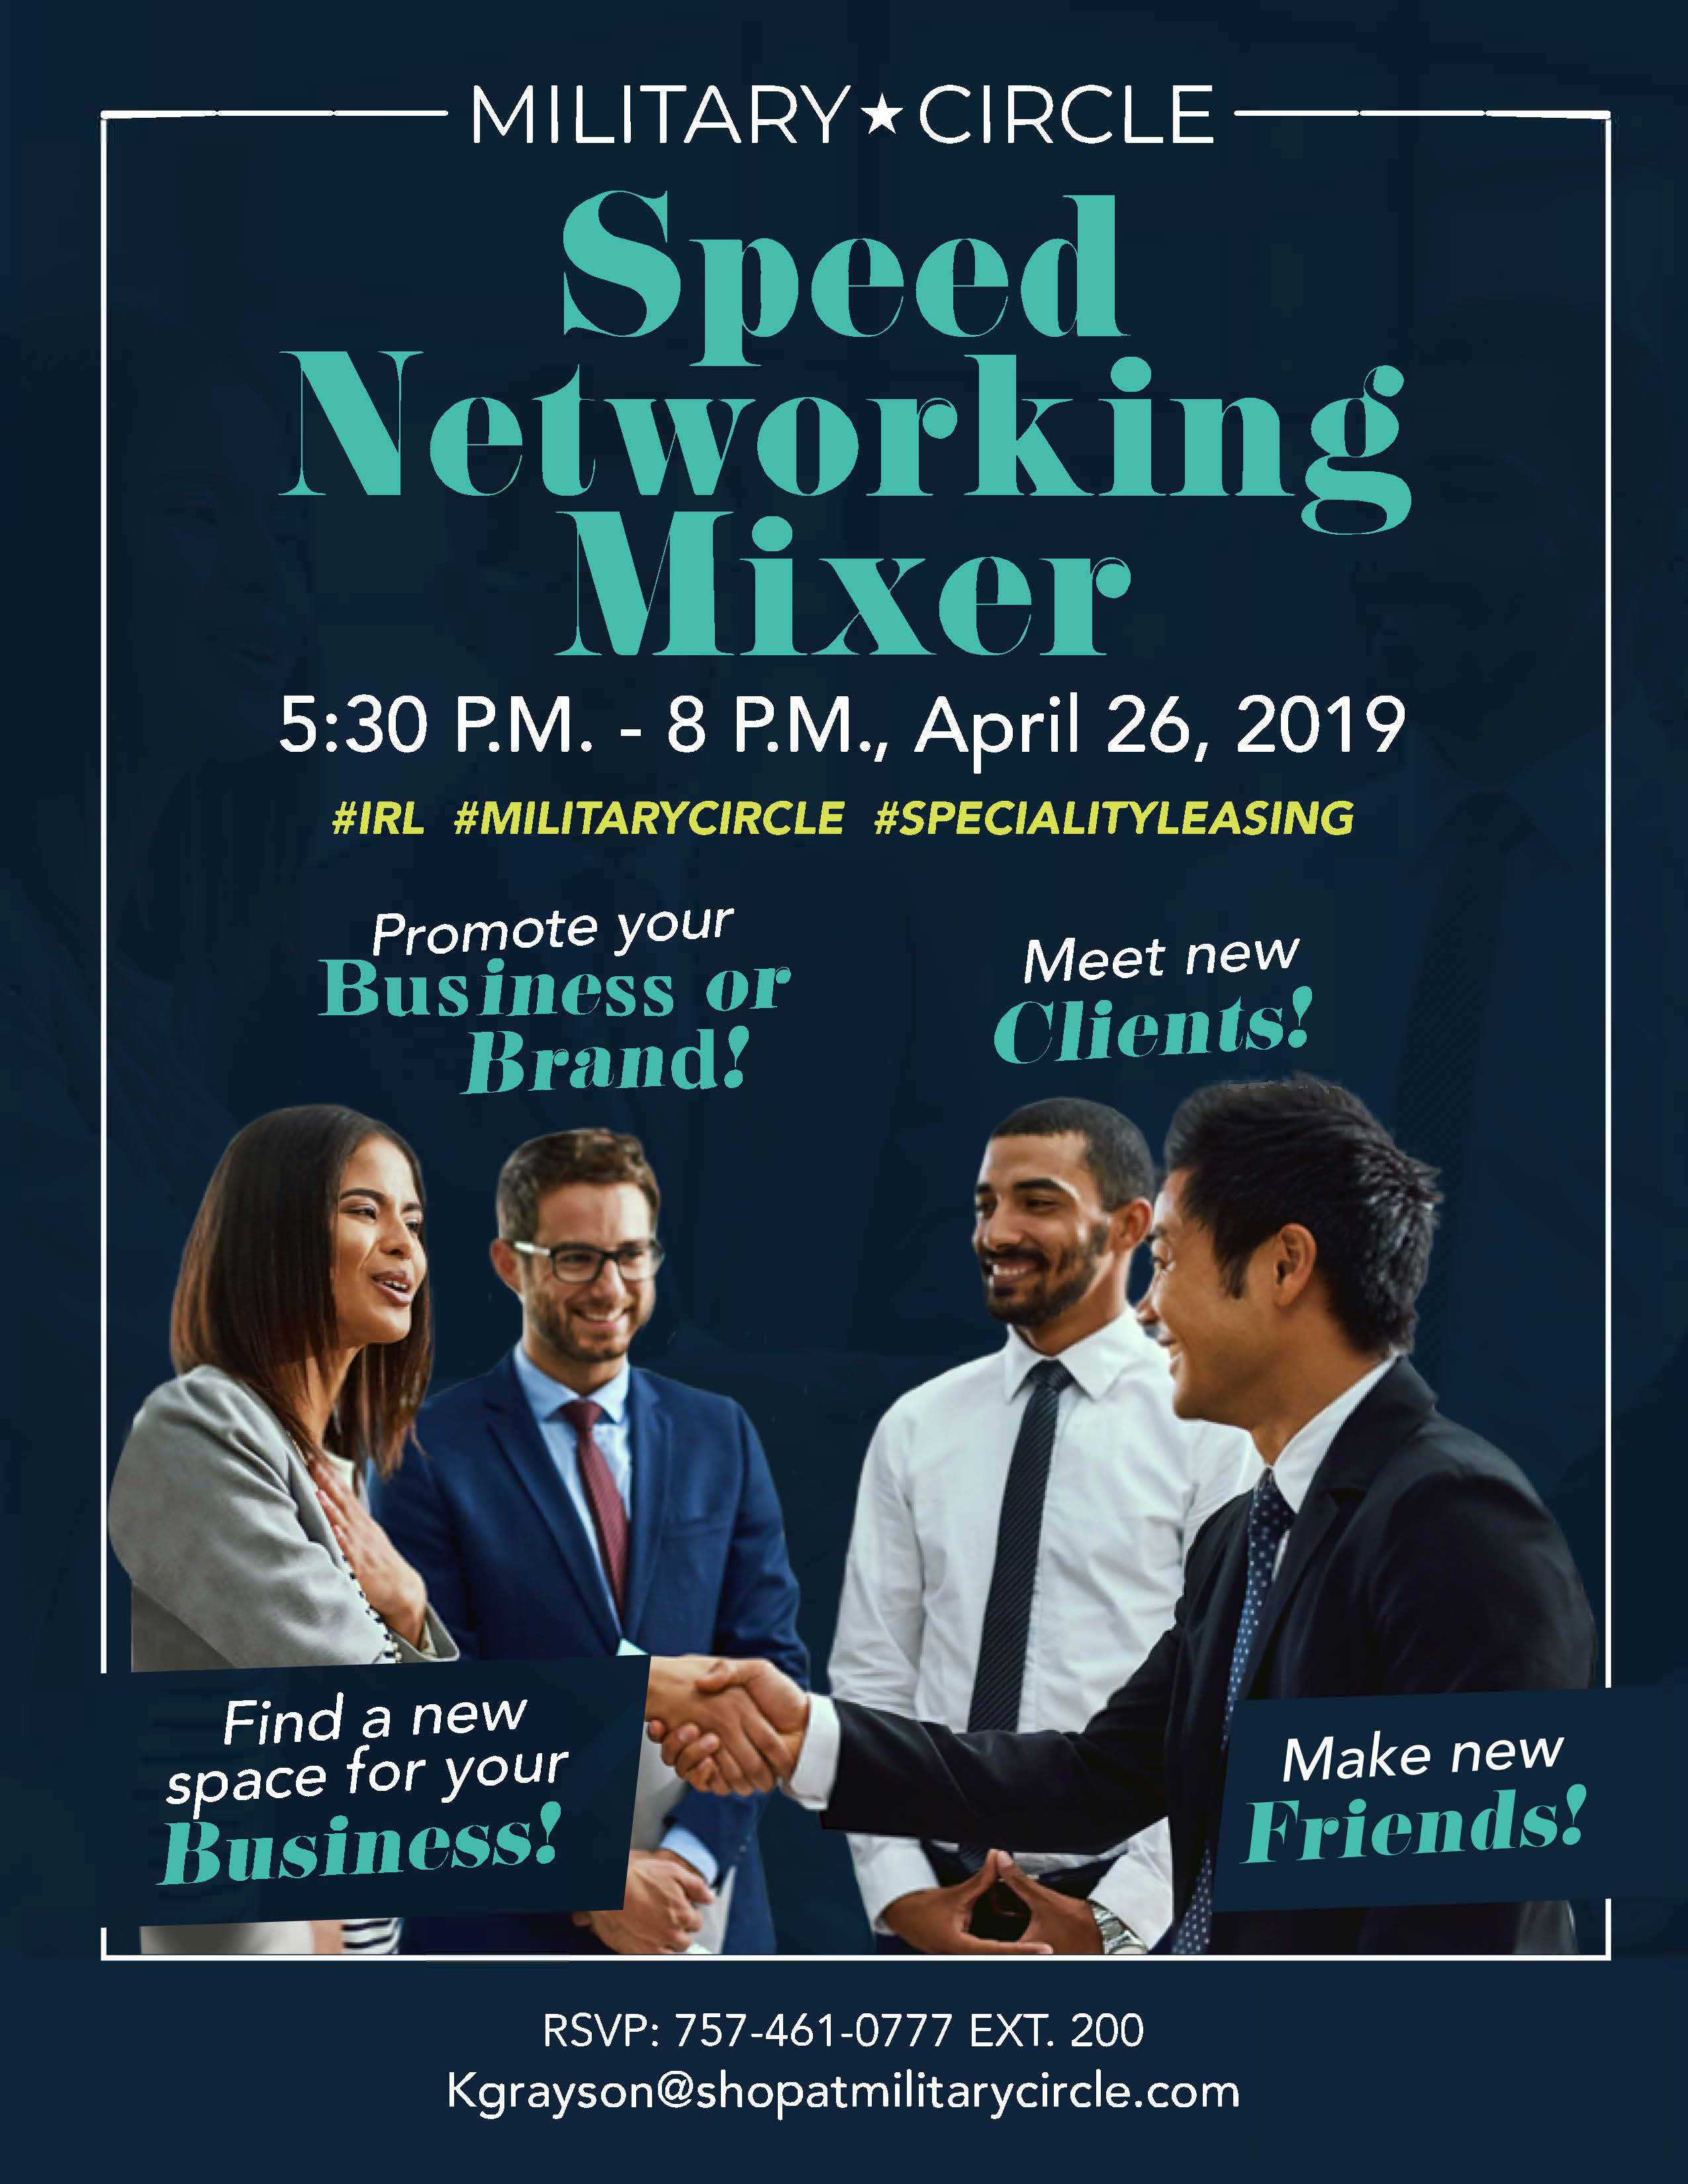 Networking Event at the Circle